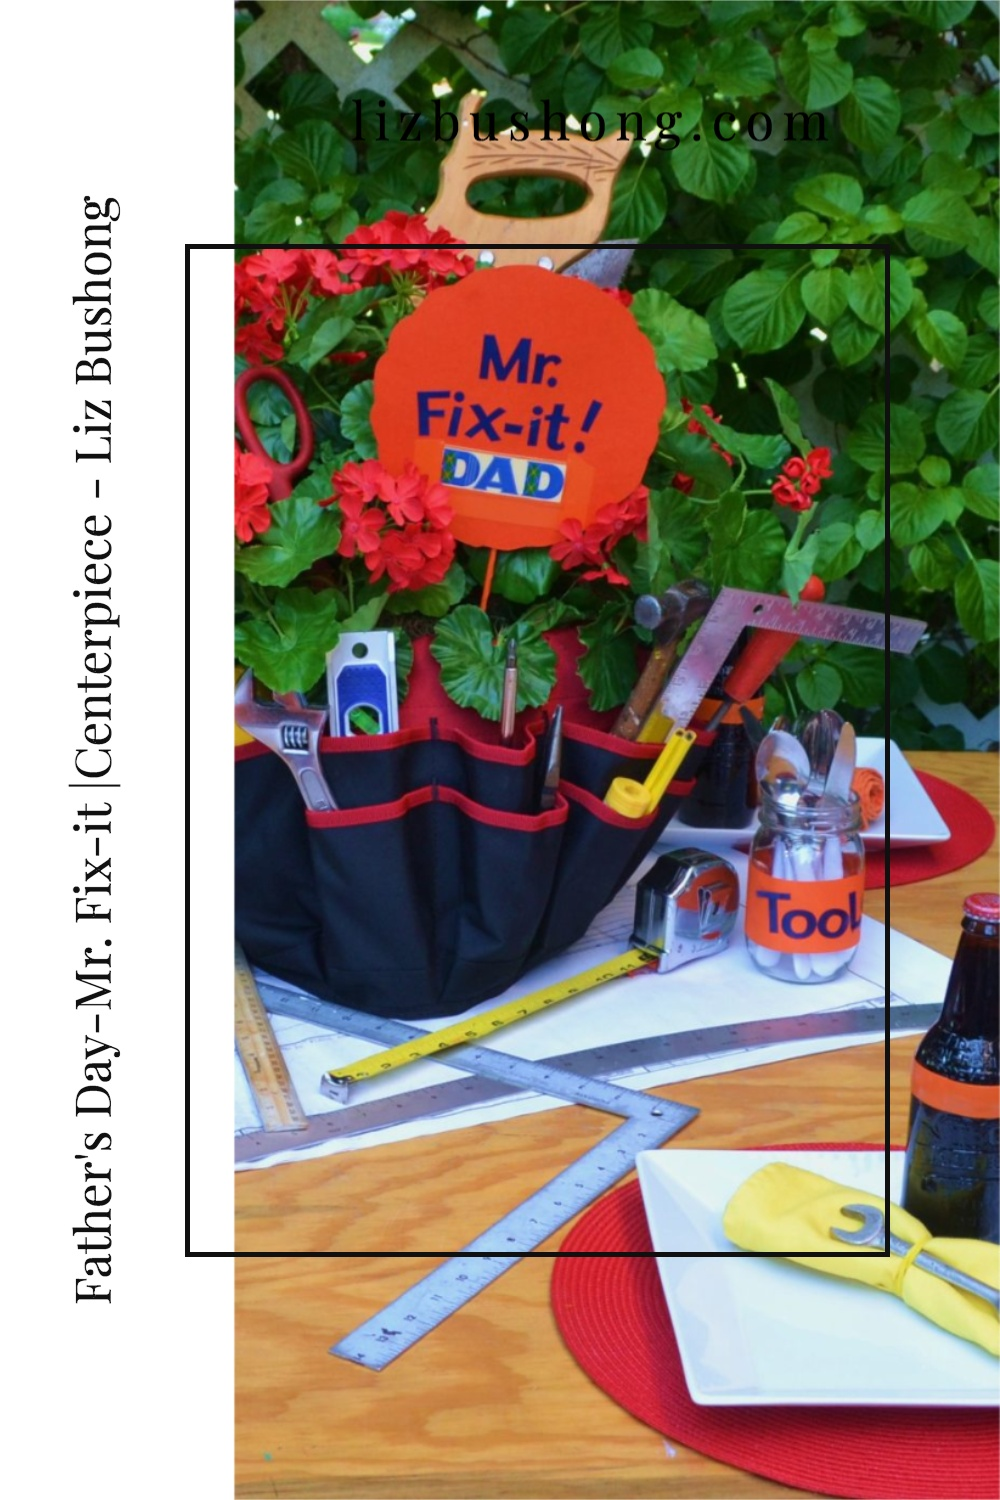 How to create a tool time table scape for dad lizbushong.com